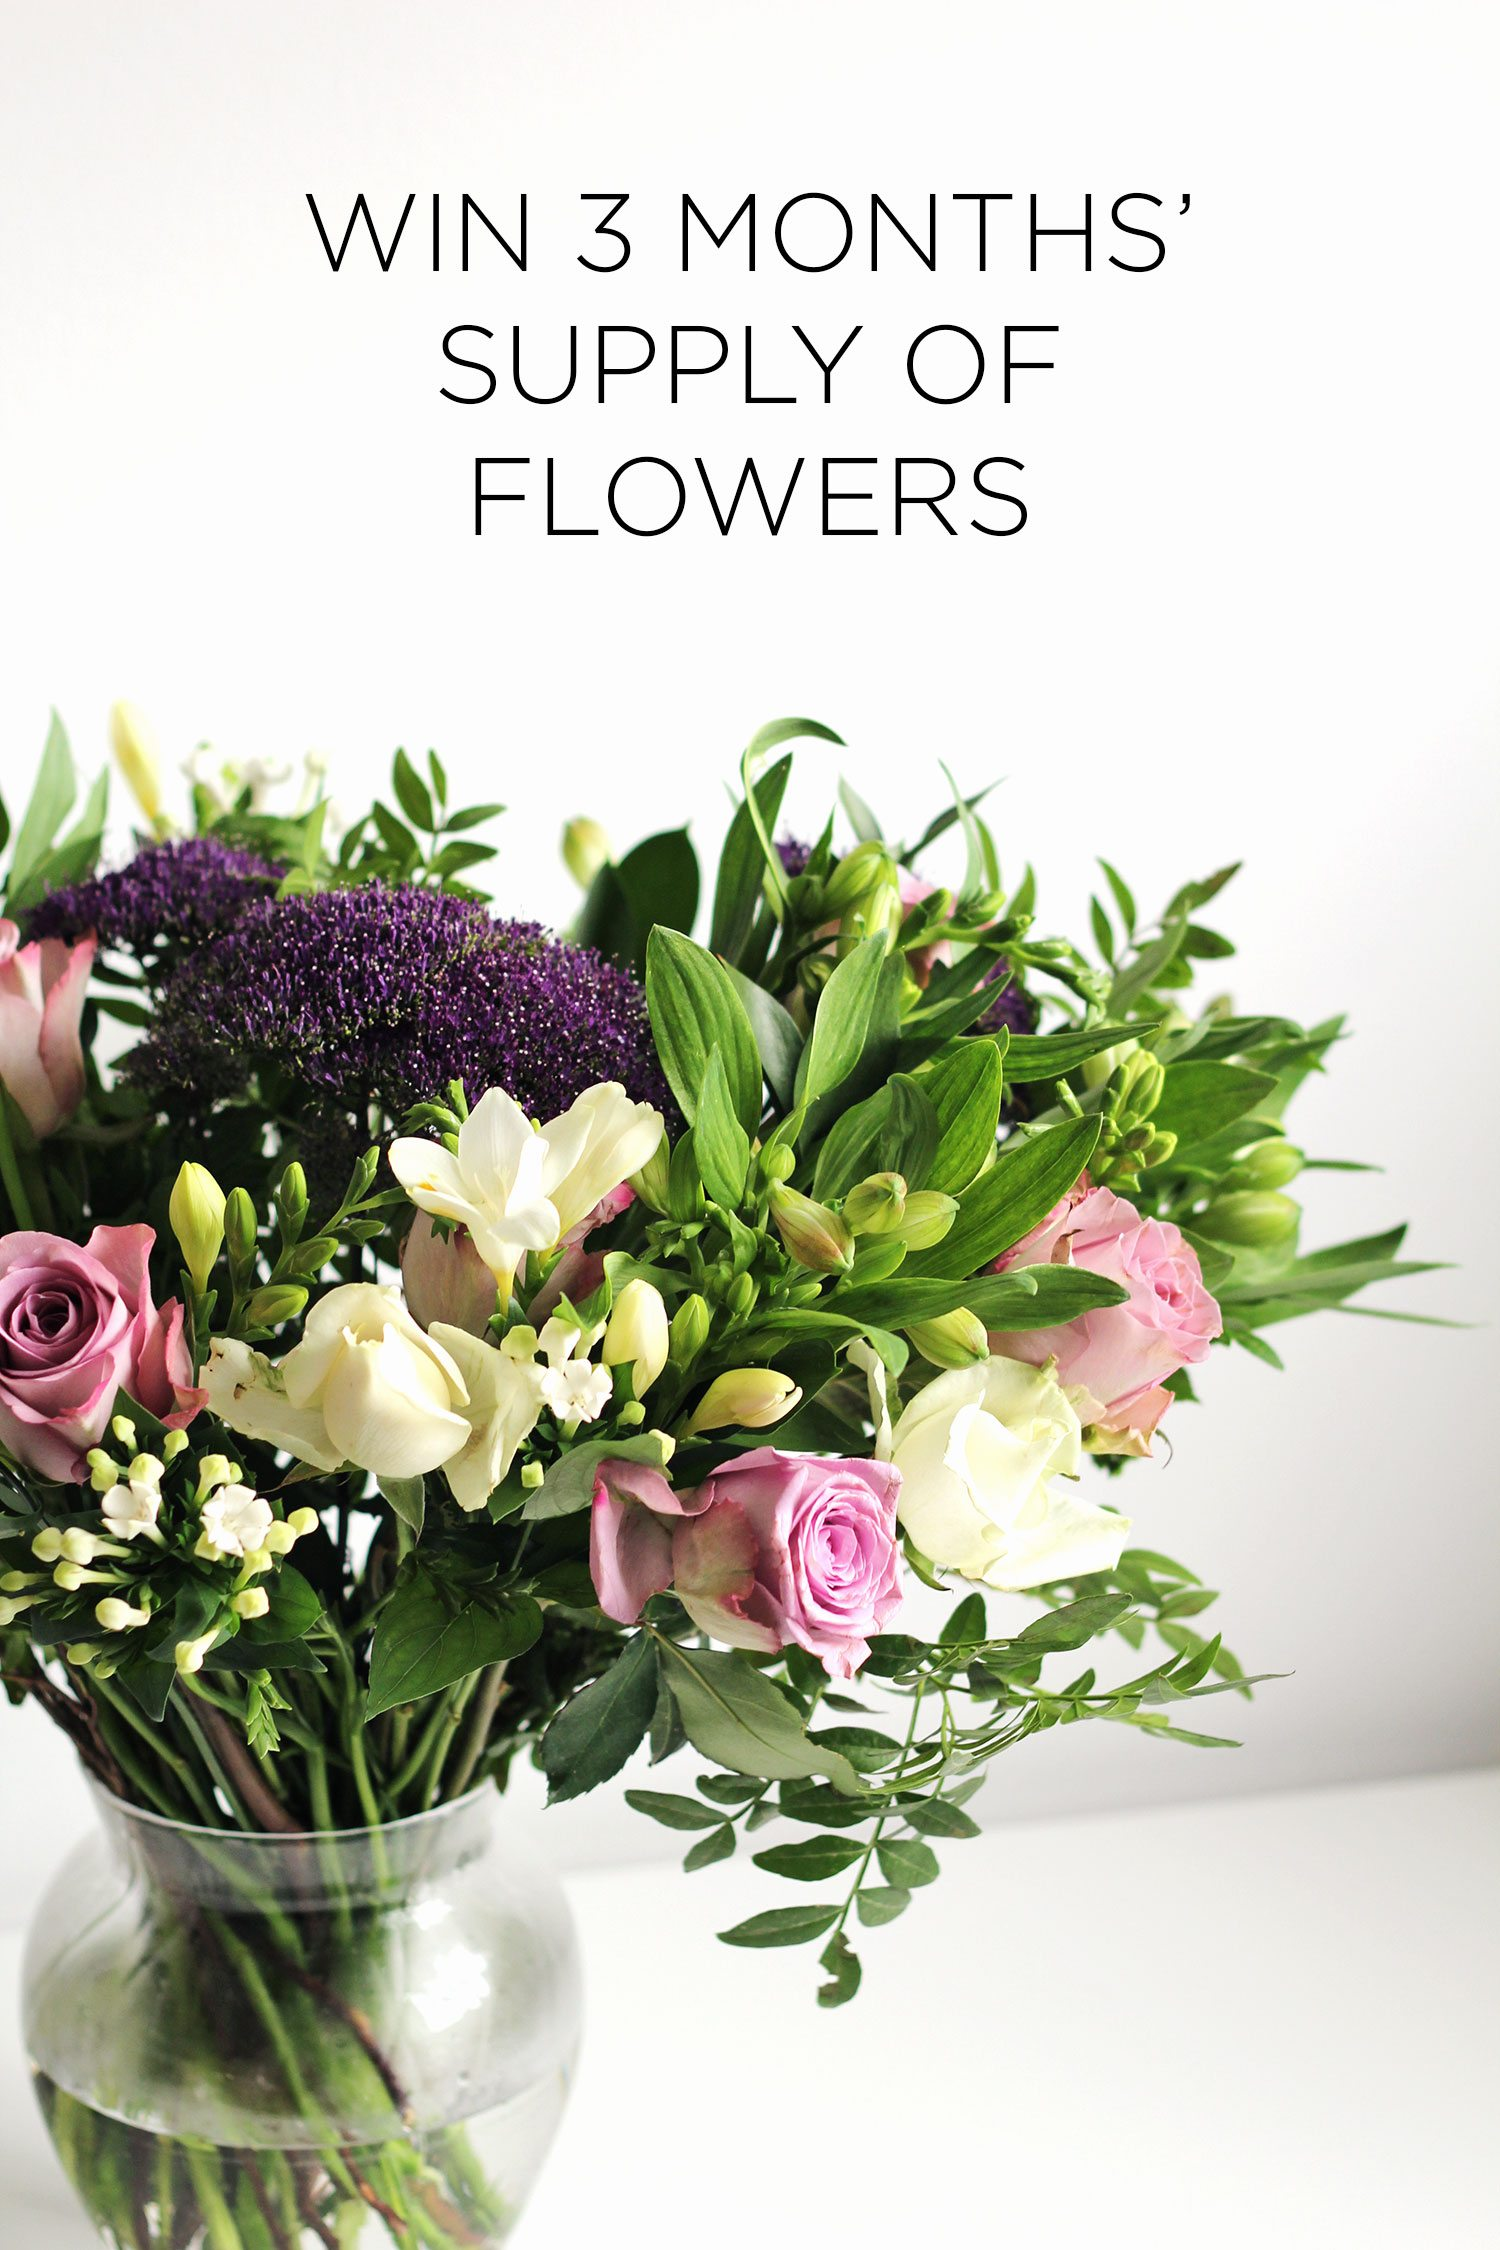 WIN-3-MONTHS-SUPPLY-OF-FLOWERS